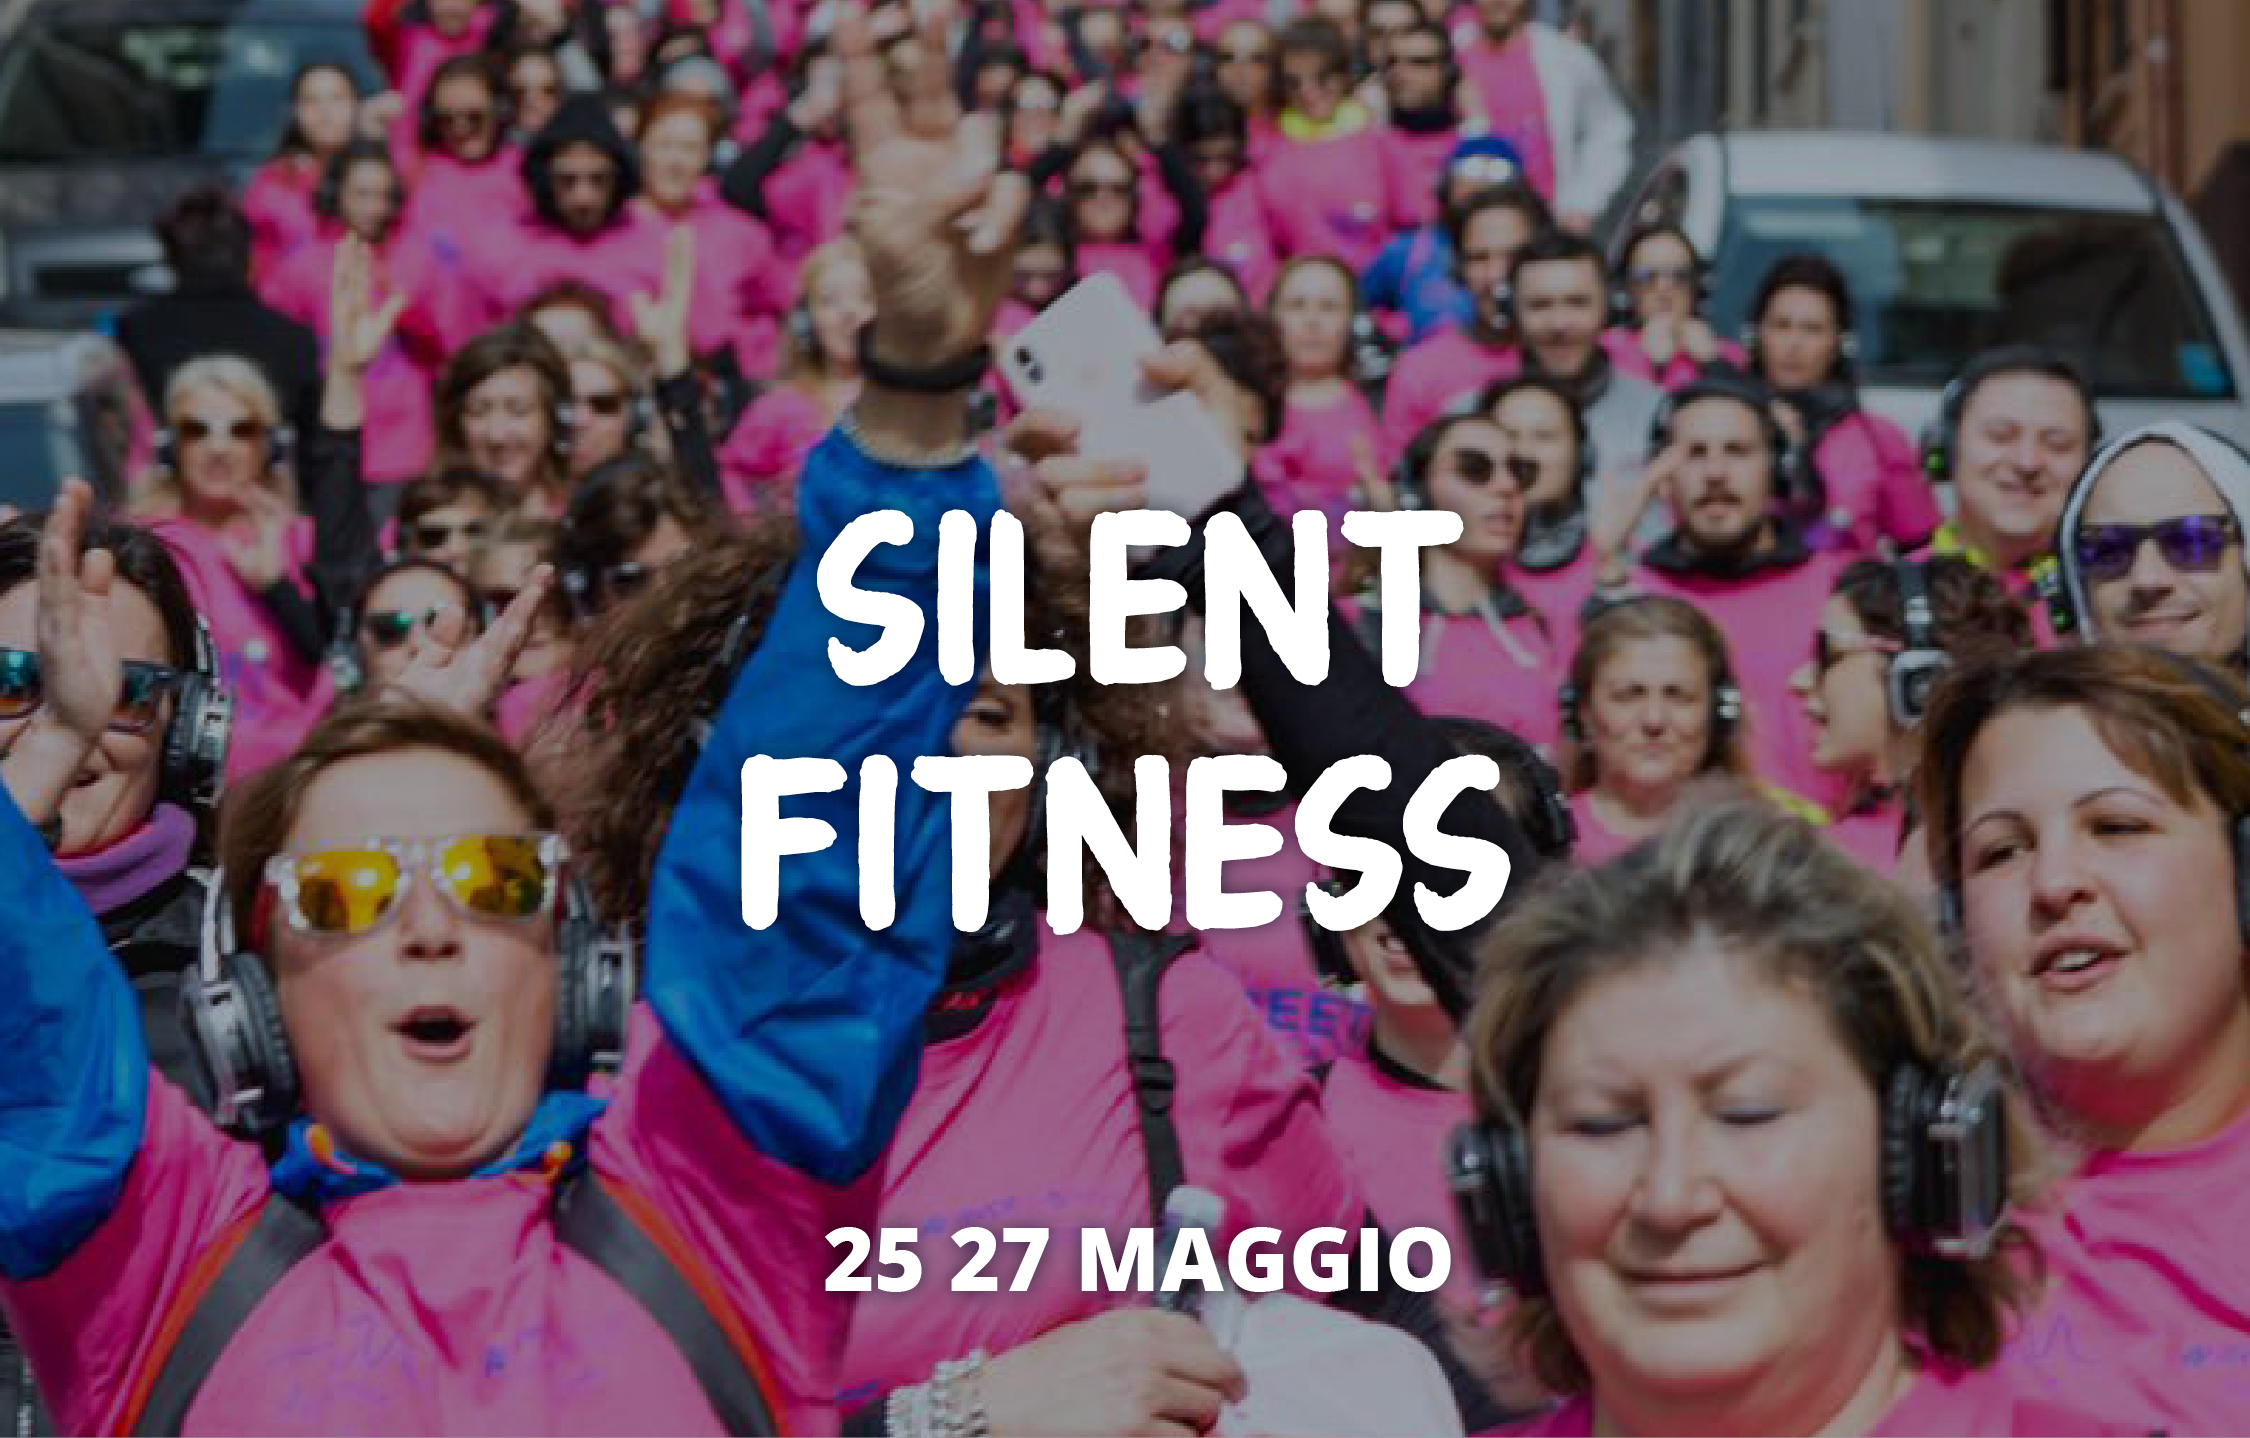 Silent Fitness